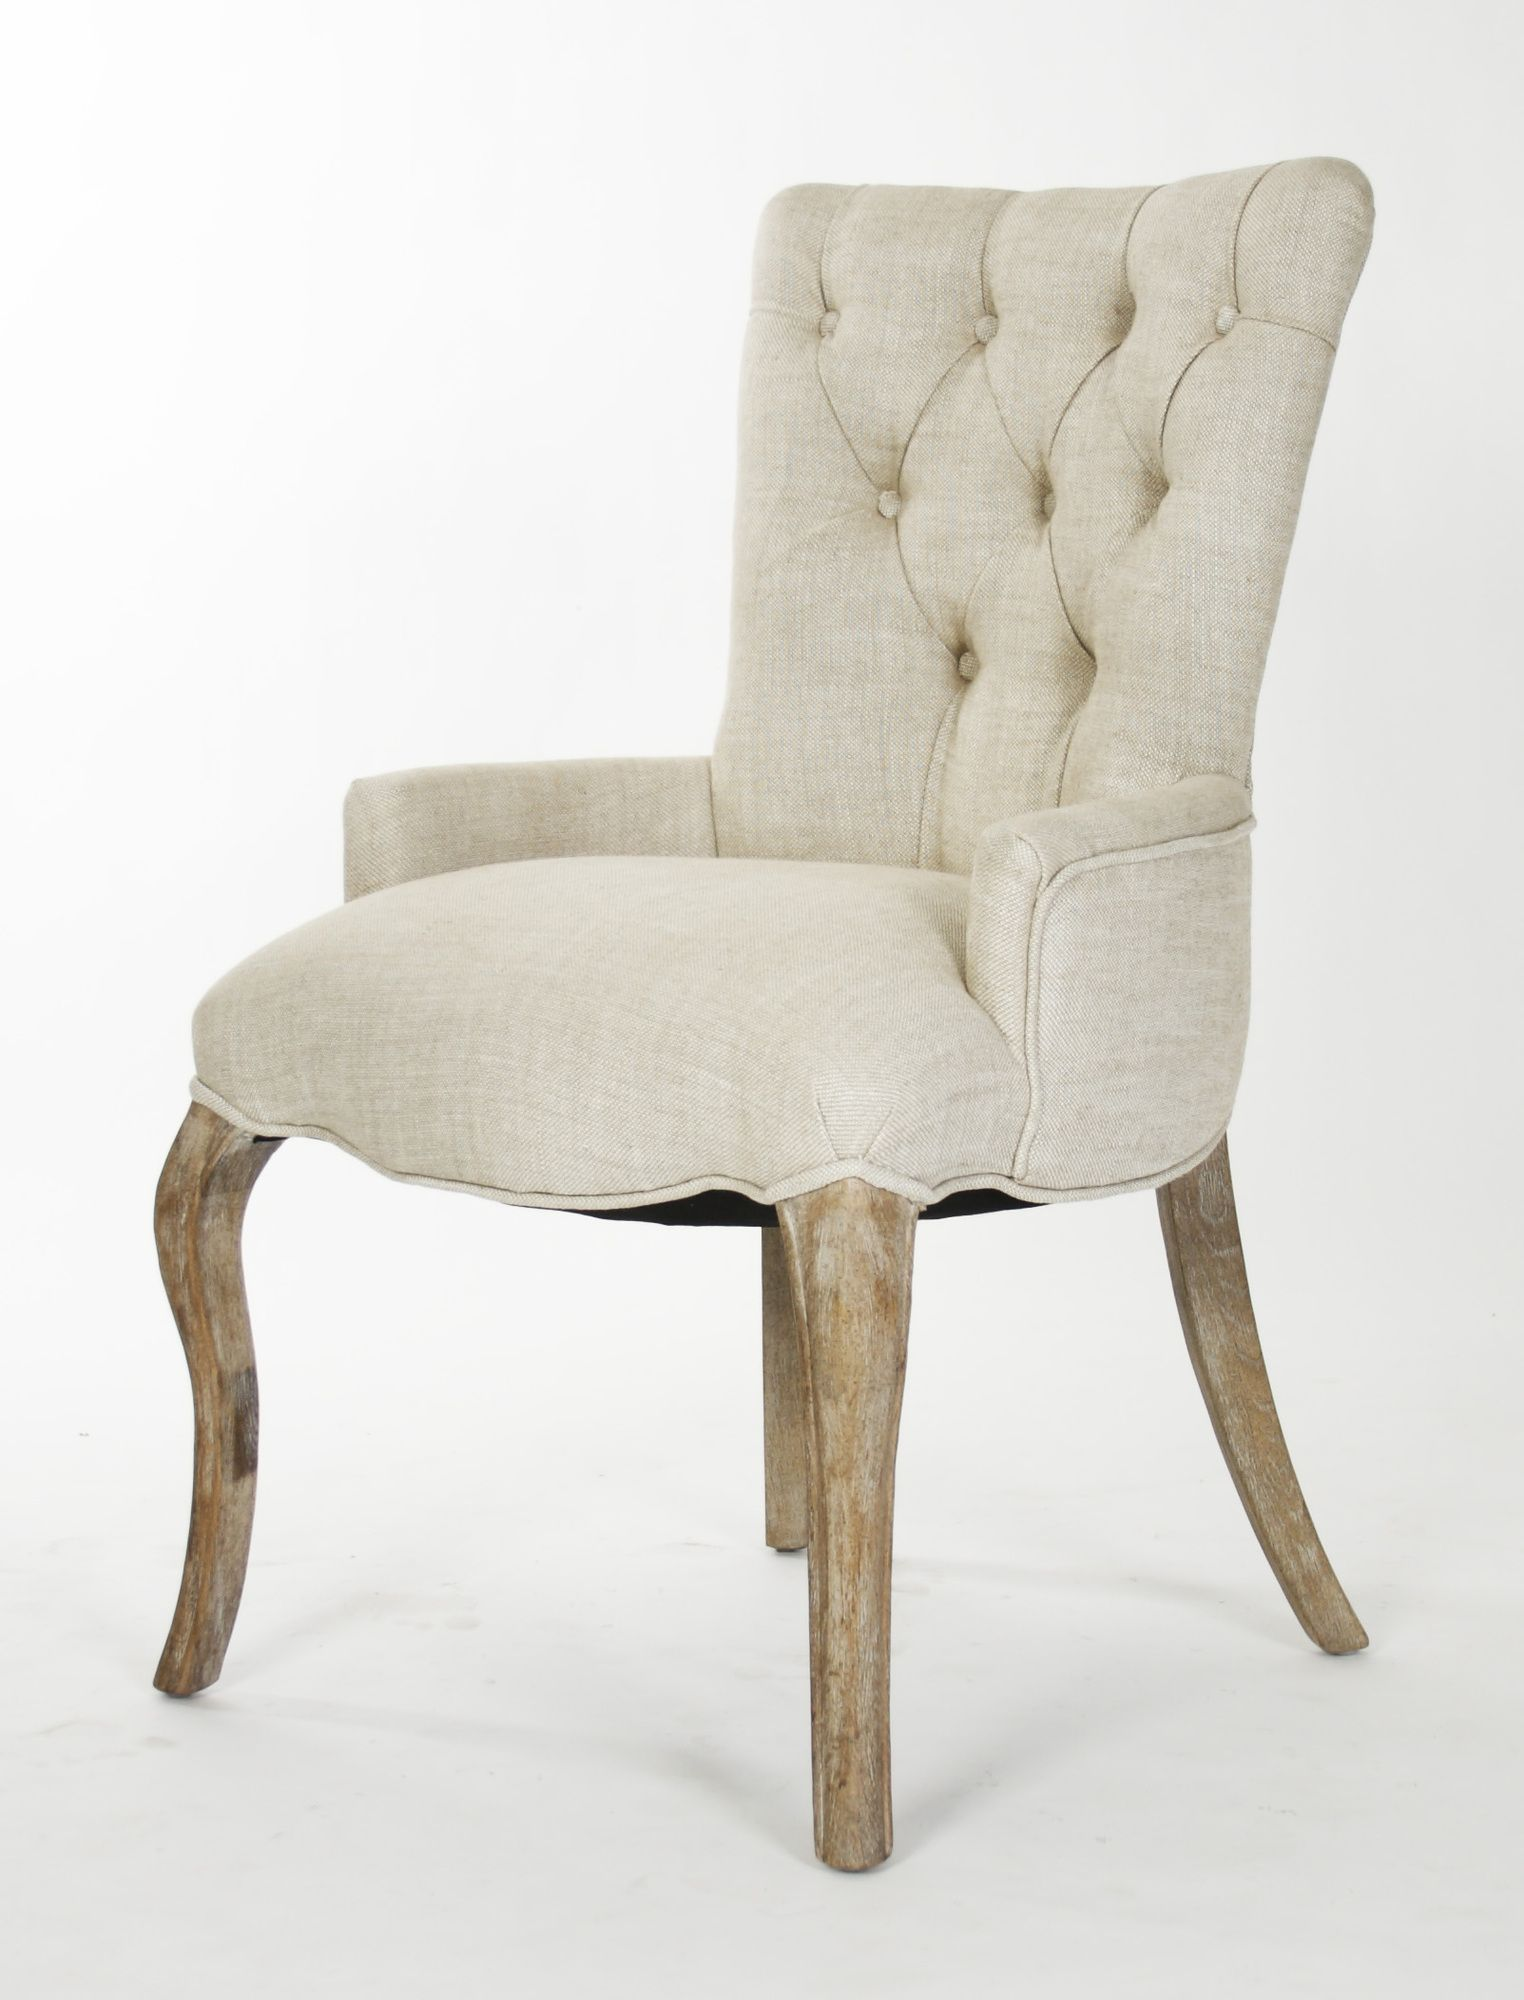 Zentique Inc Iris Cream Natural Linen Tufted Chair in Reclaimed